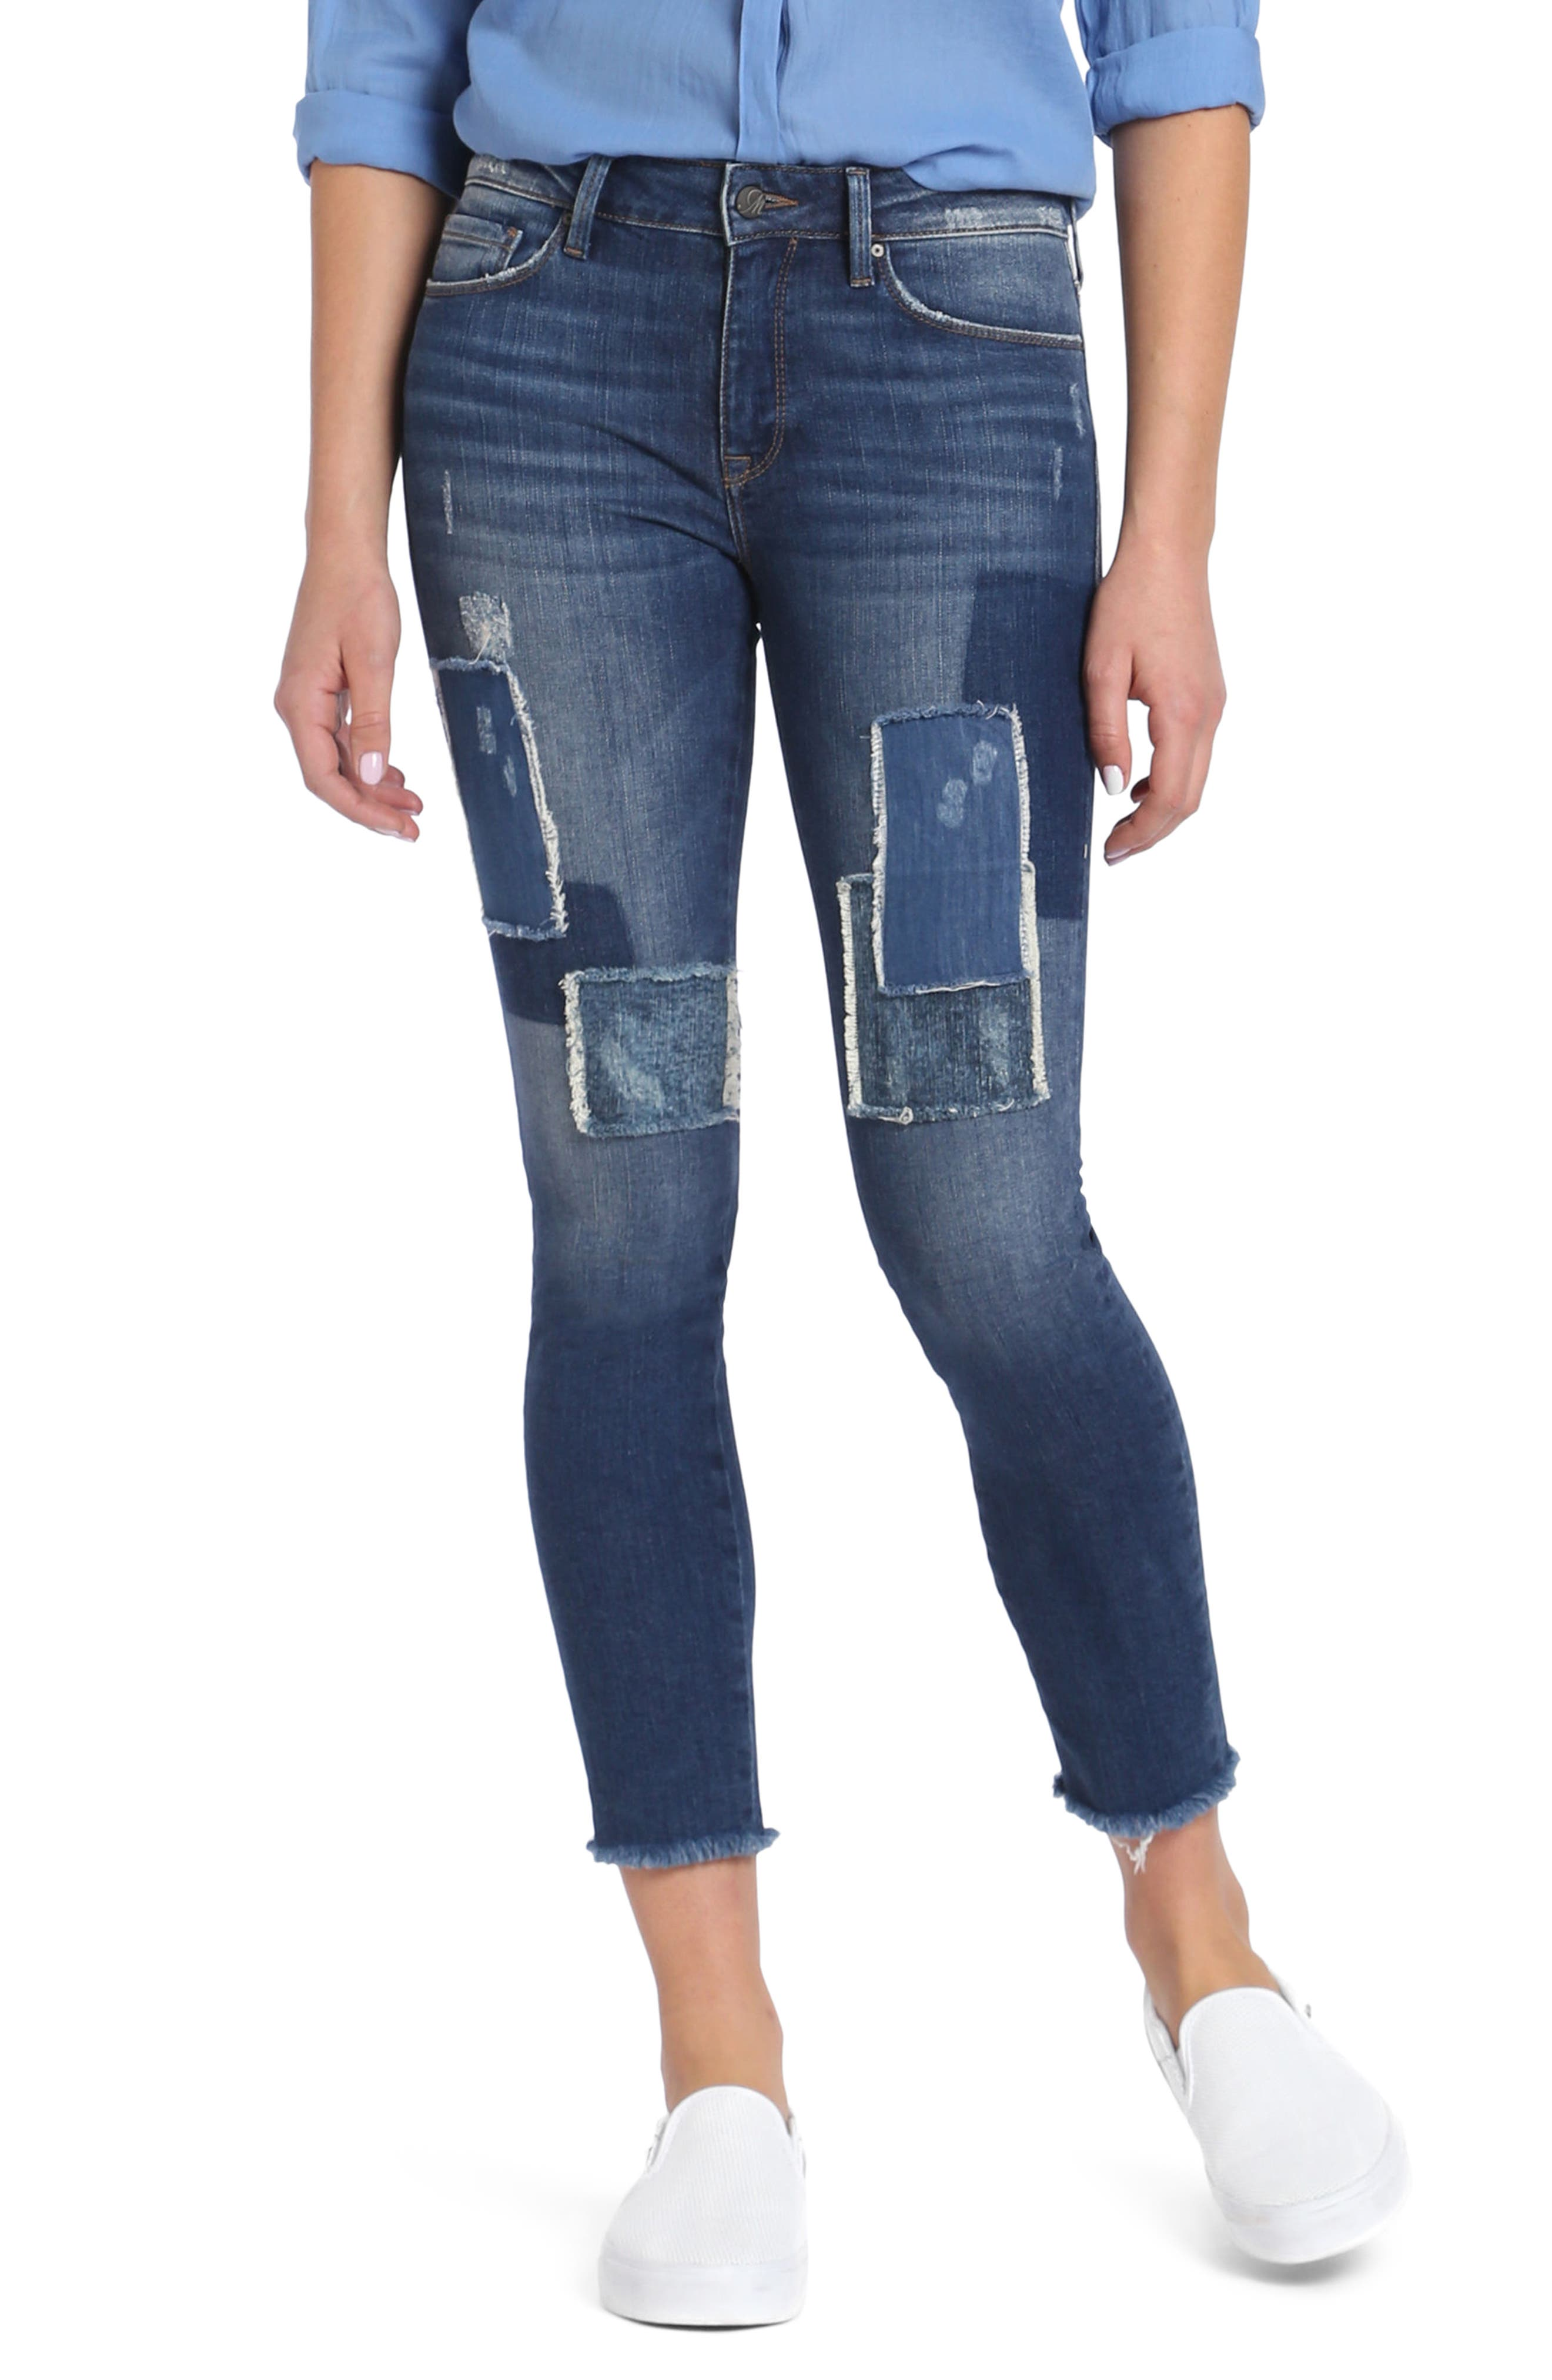 Alternate Image 1 Selected - Mavi Jeans Adriana Patched Stretch Skinny Jeans (Indigo Patched Vintage)